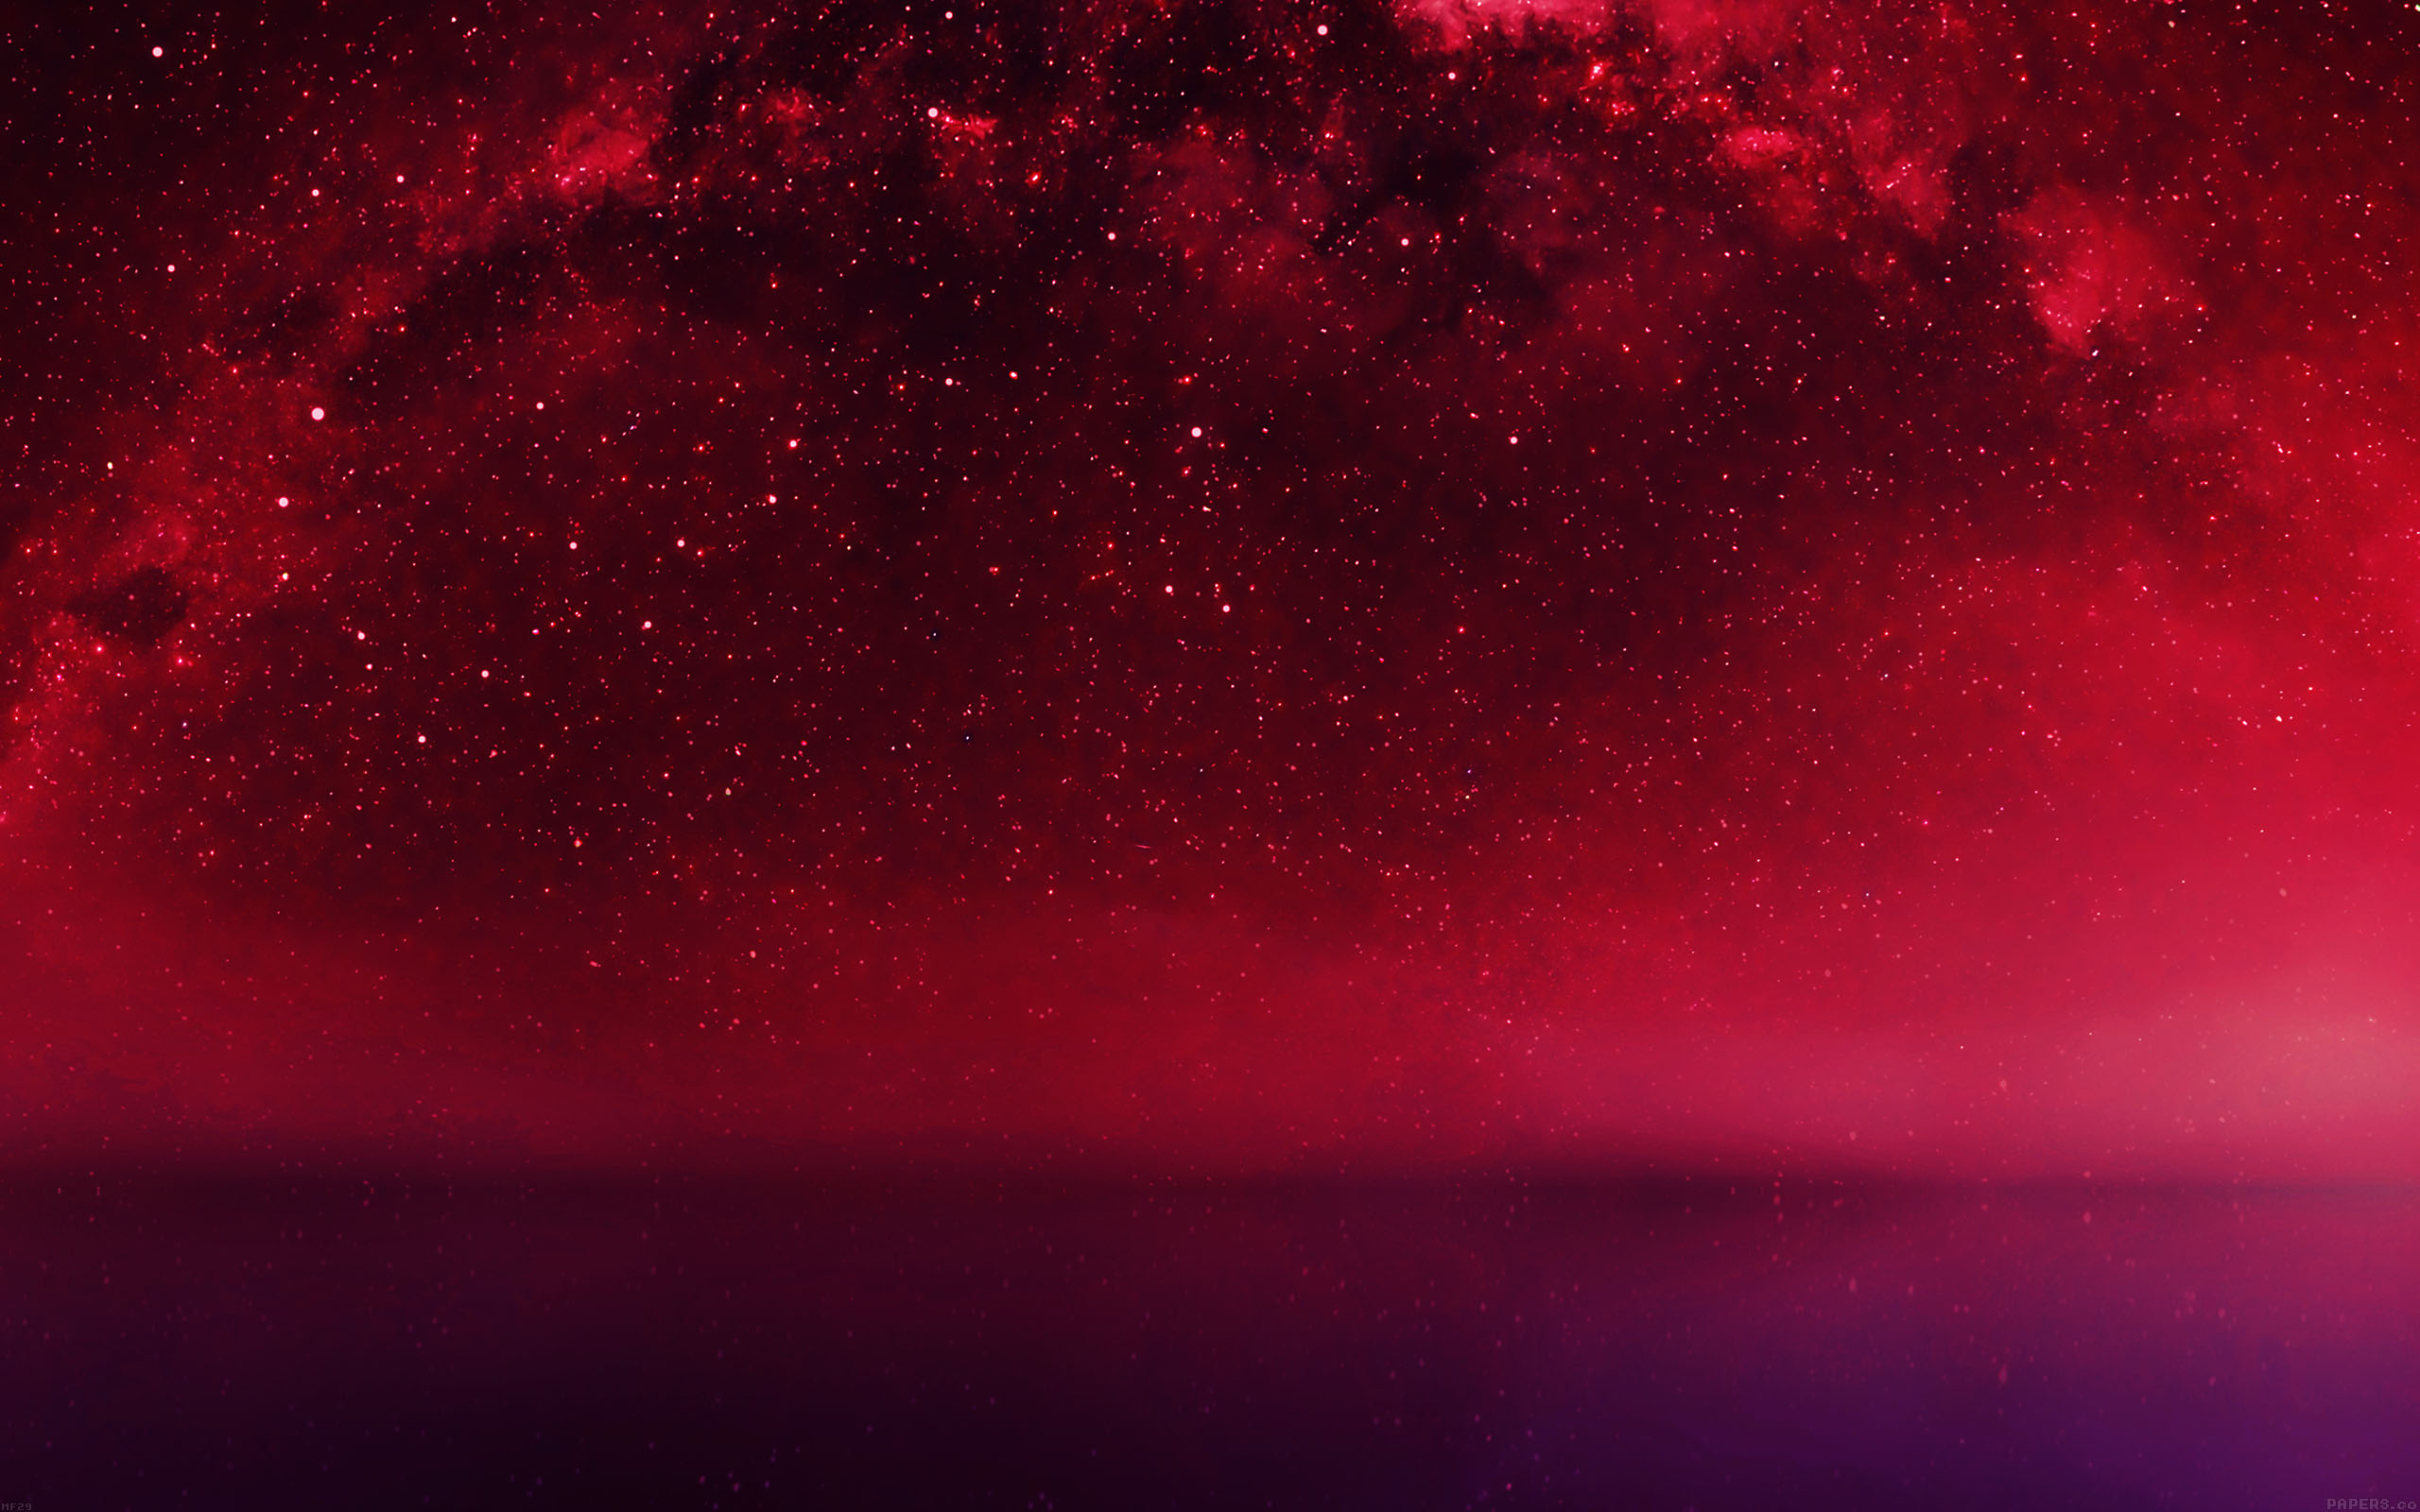 New Live Wallpapers For Iphone X Mf29 Cosmos Red Night Live Lake Space Starry Papers Co